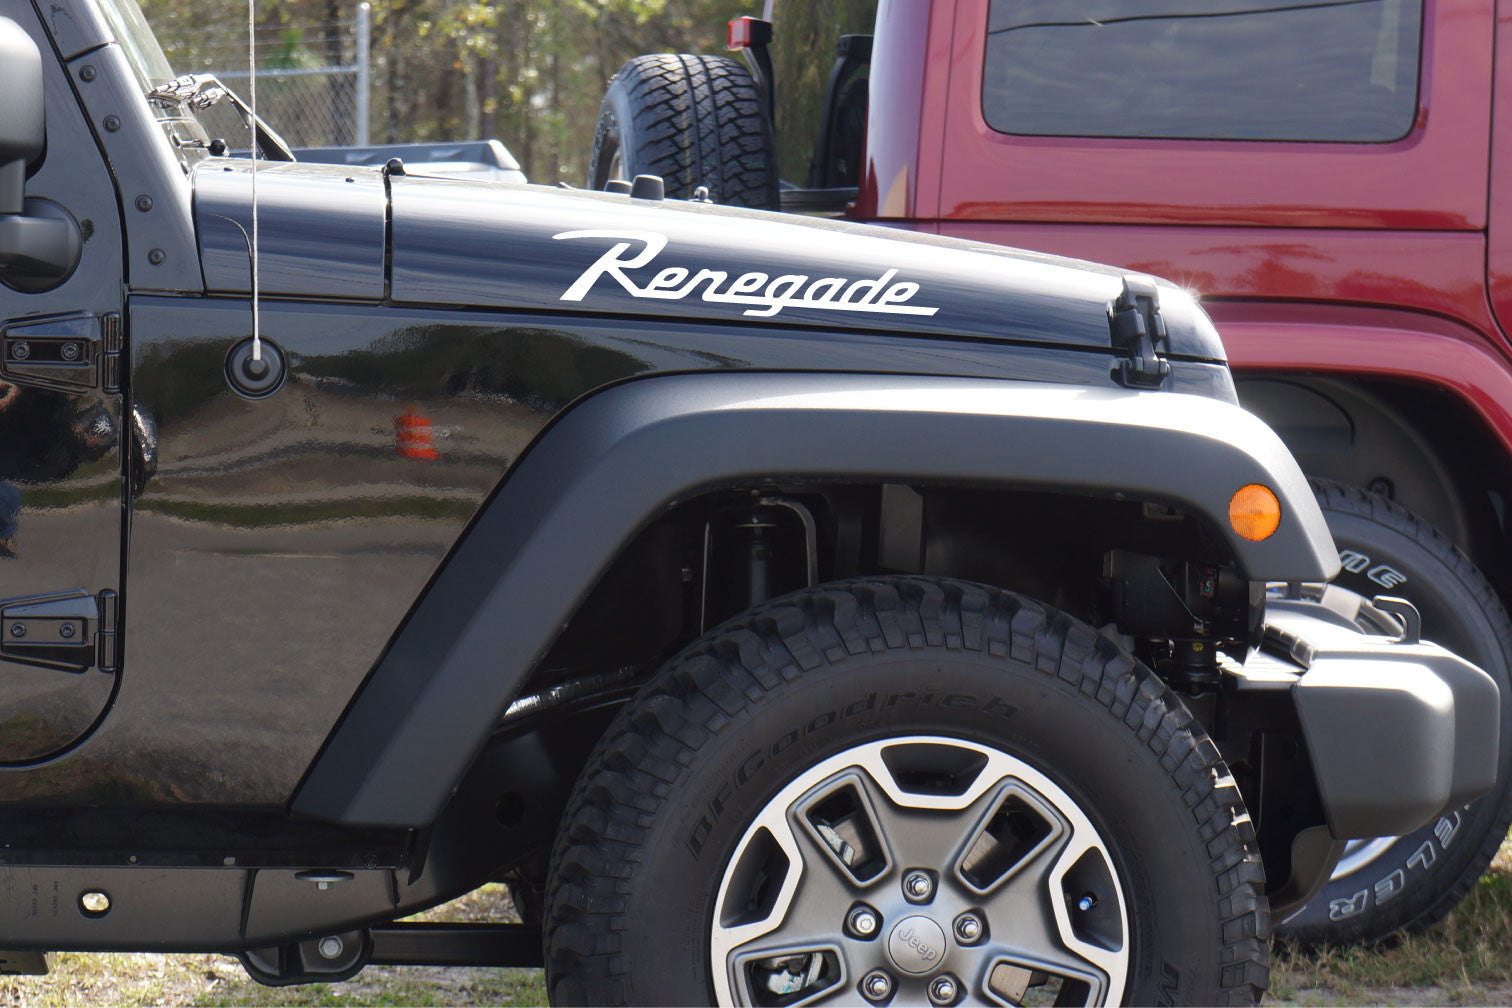 Jeep Wrangler Renegade Hood Decals Cj Style Font The